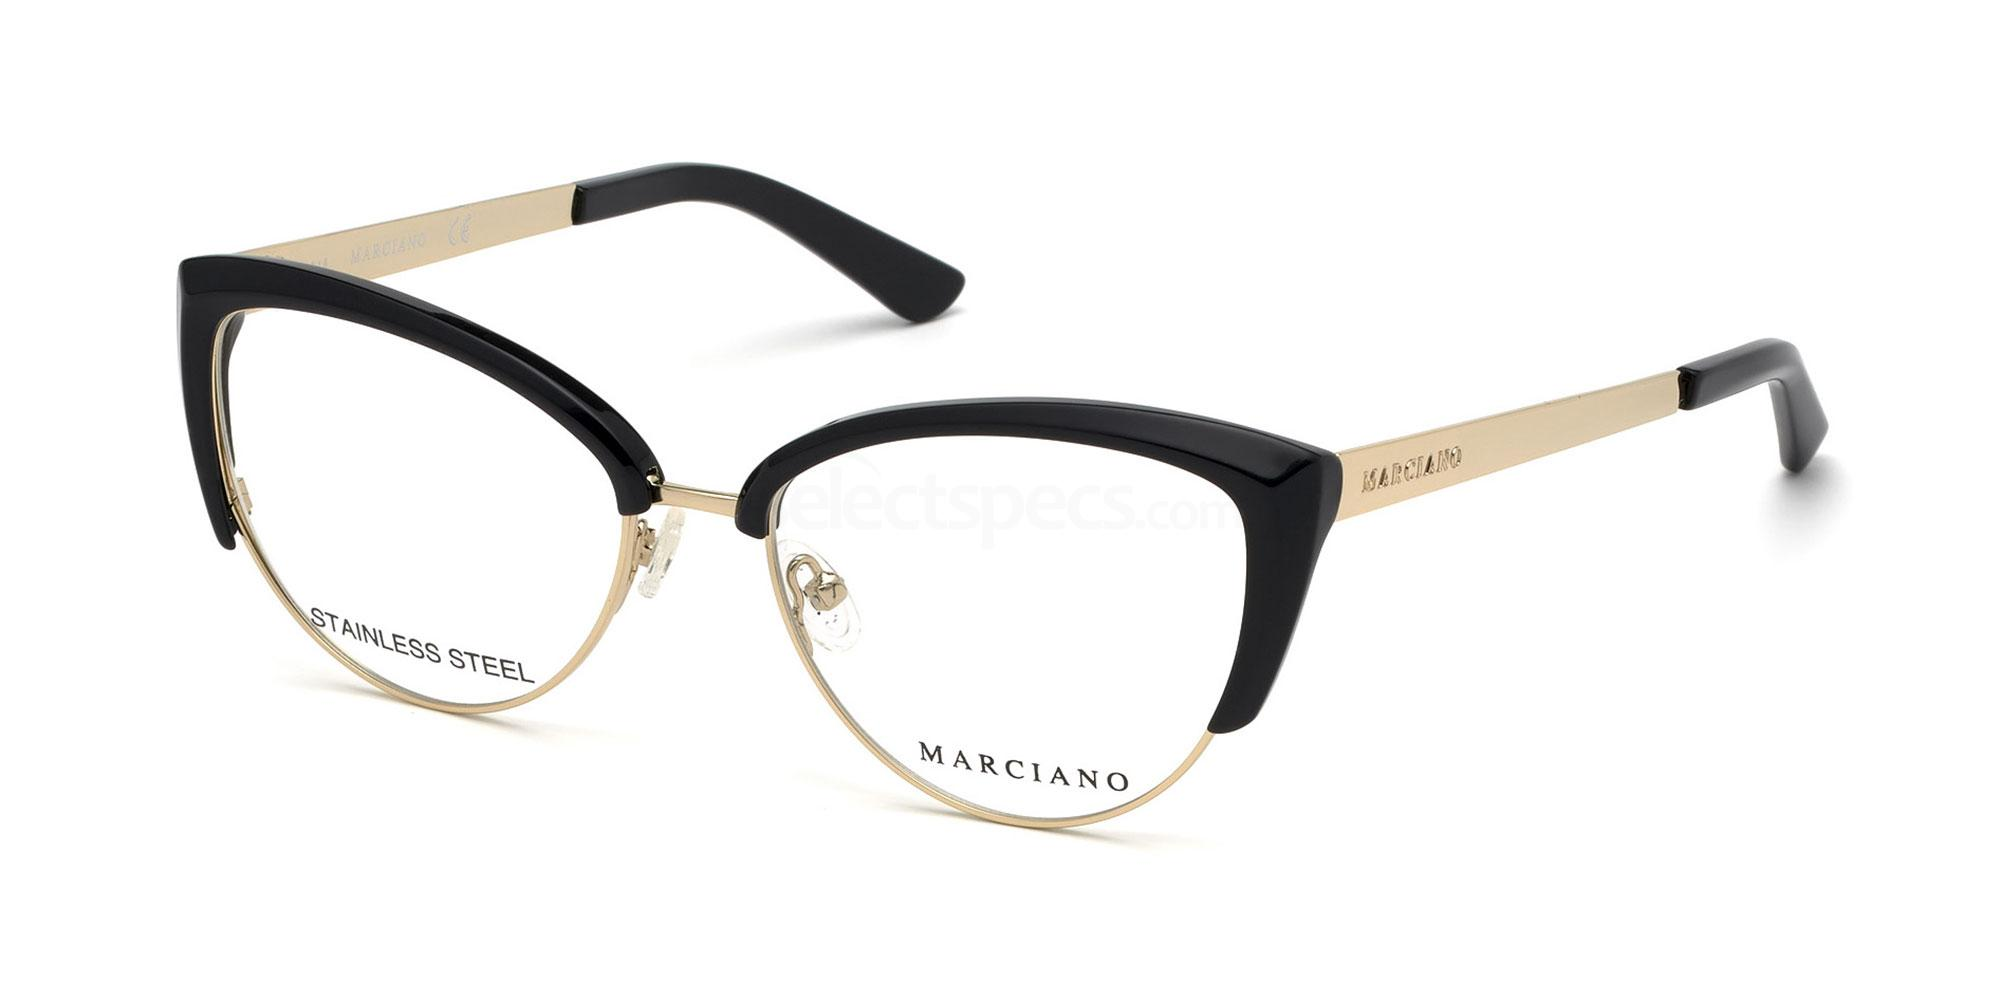 001 GM0335 Glasses, Guess by Marciano